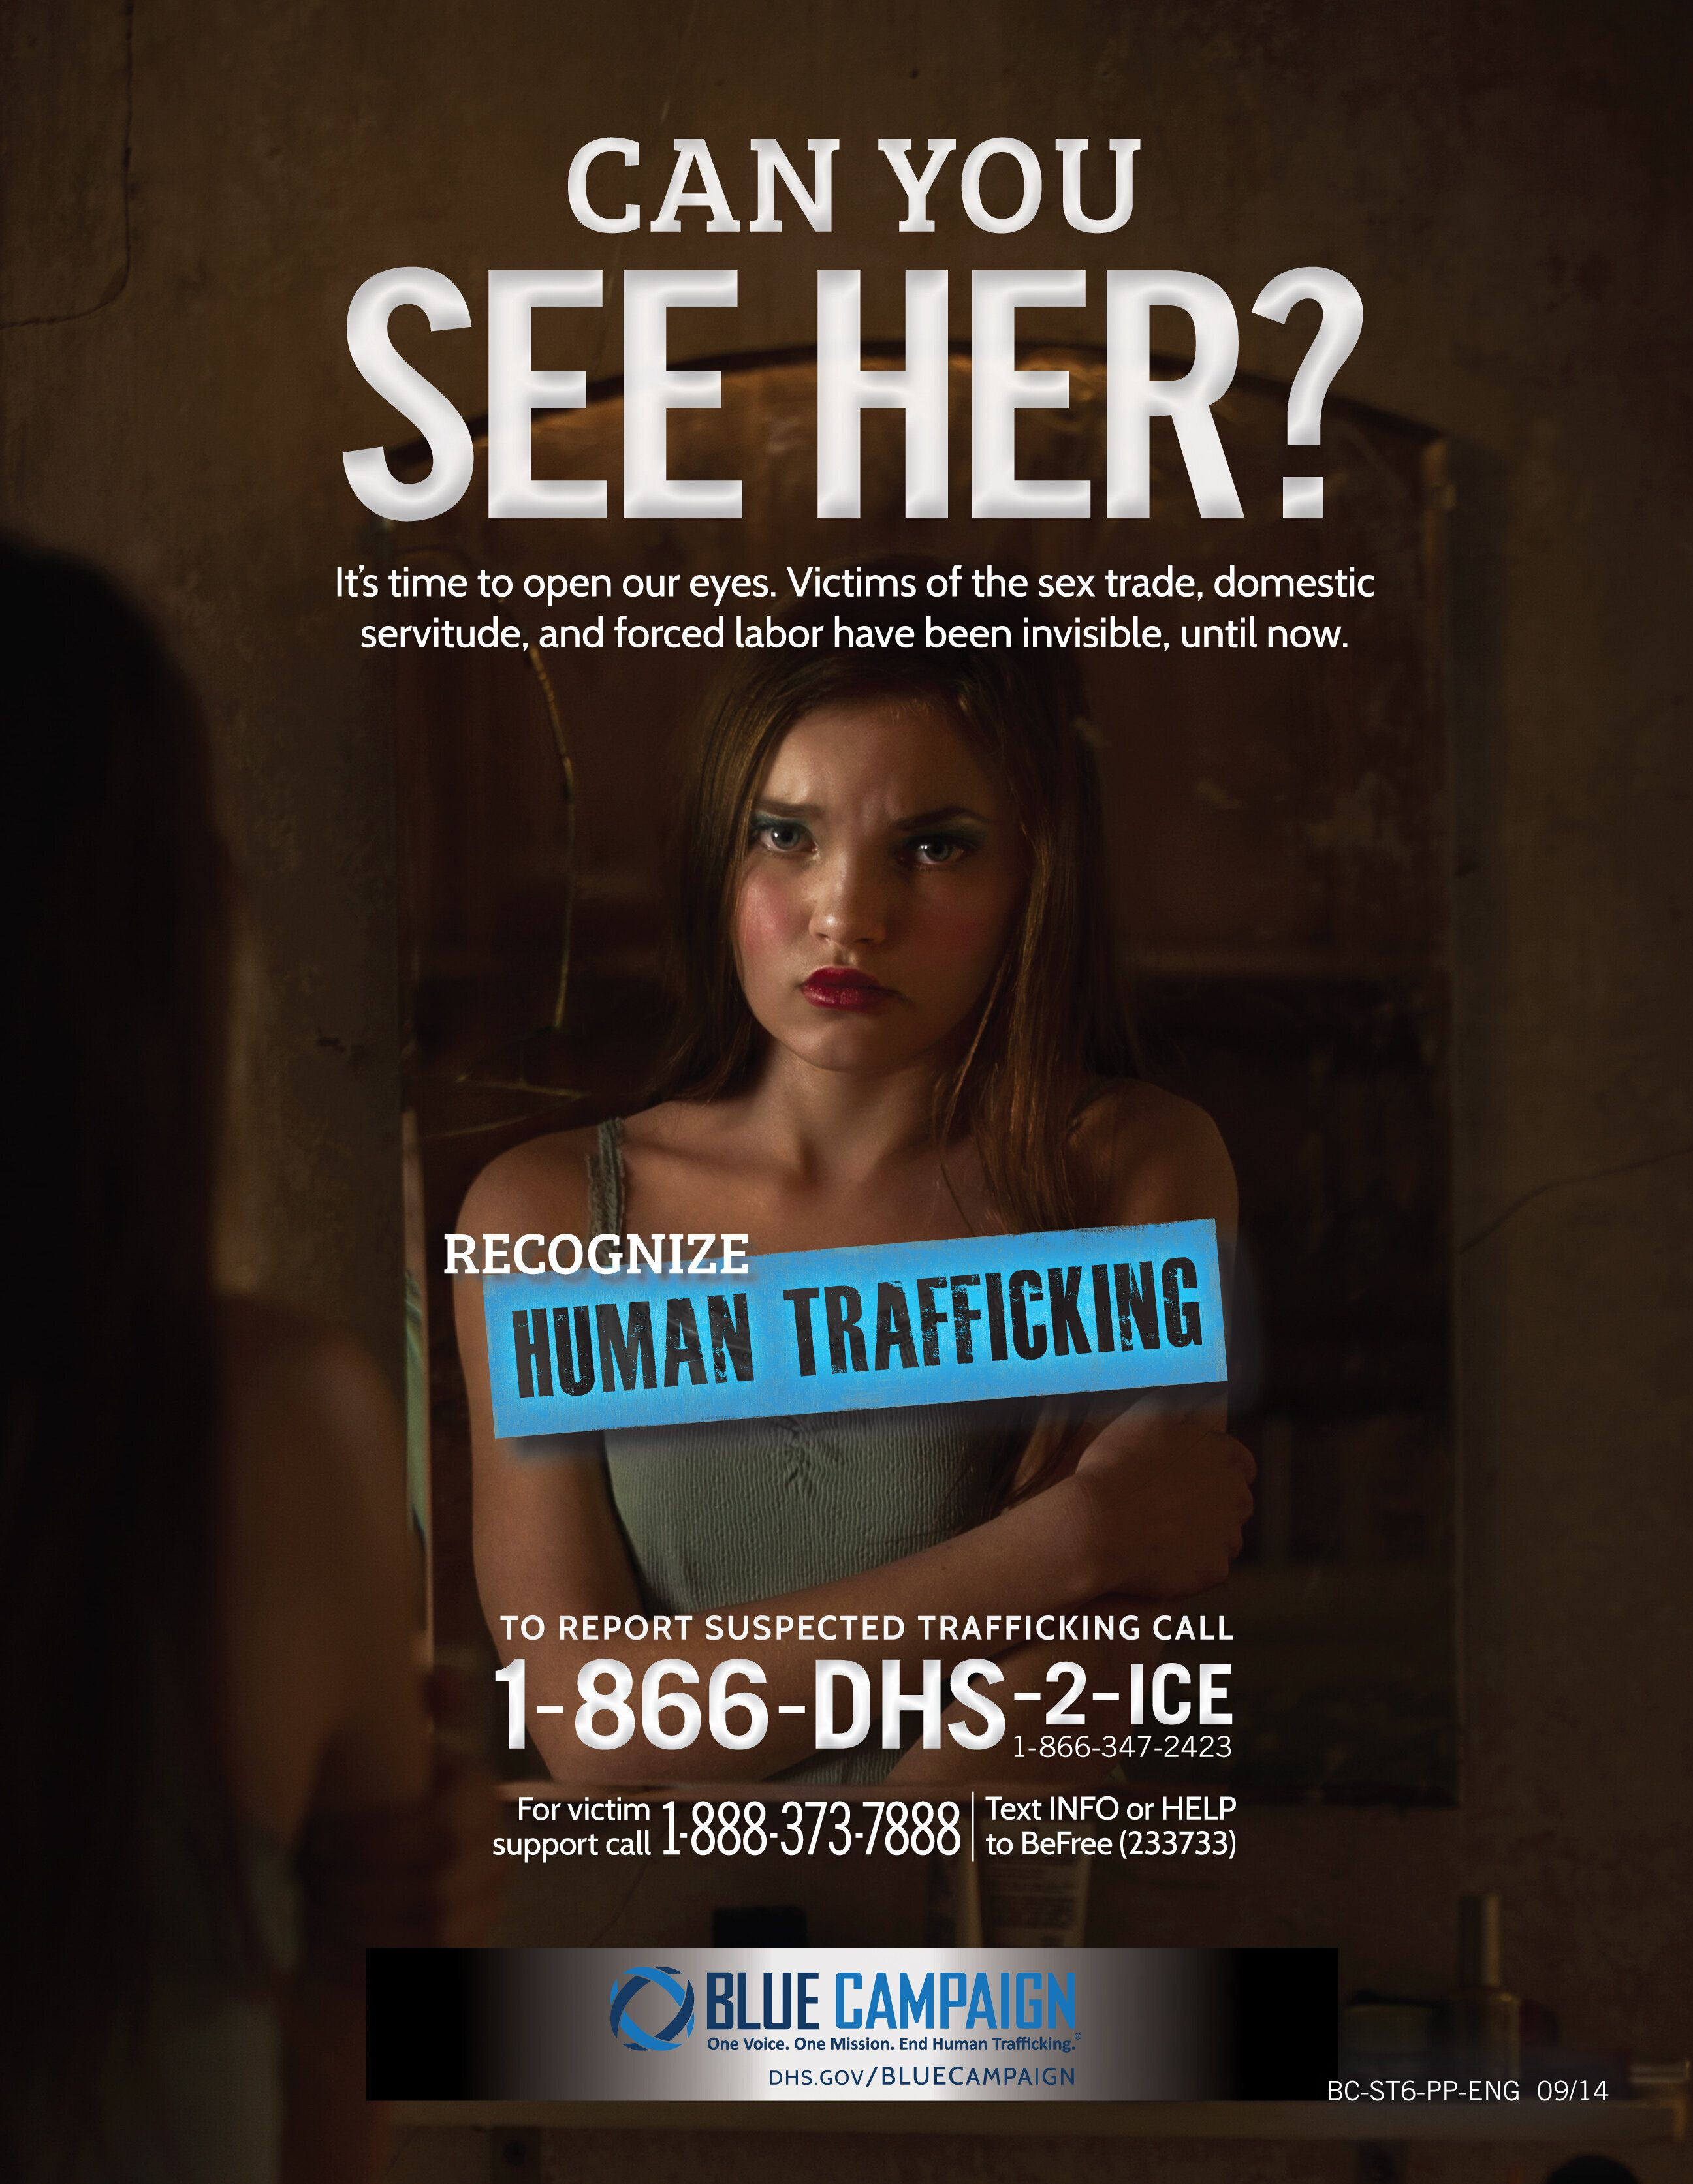 Awareness campaigns depict a version of trafficking that rarely happens in real life.